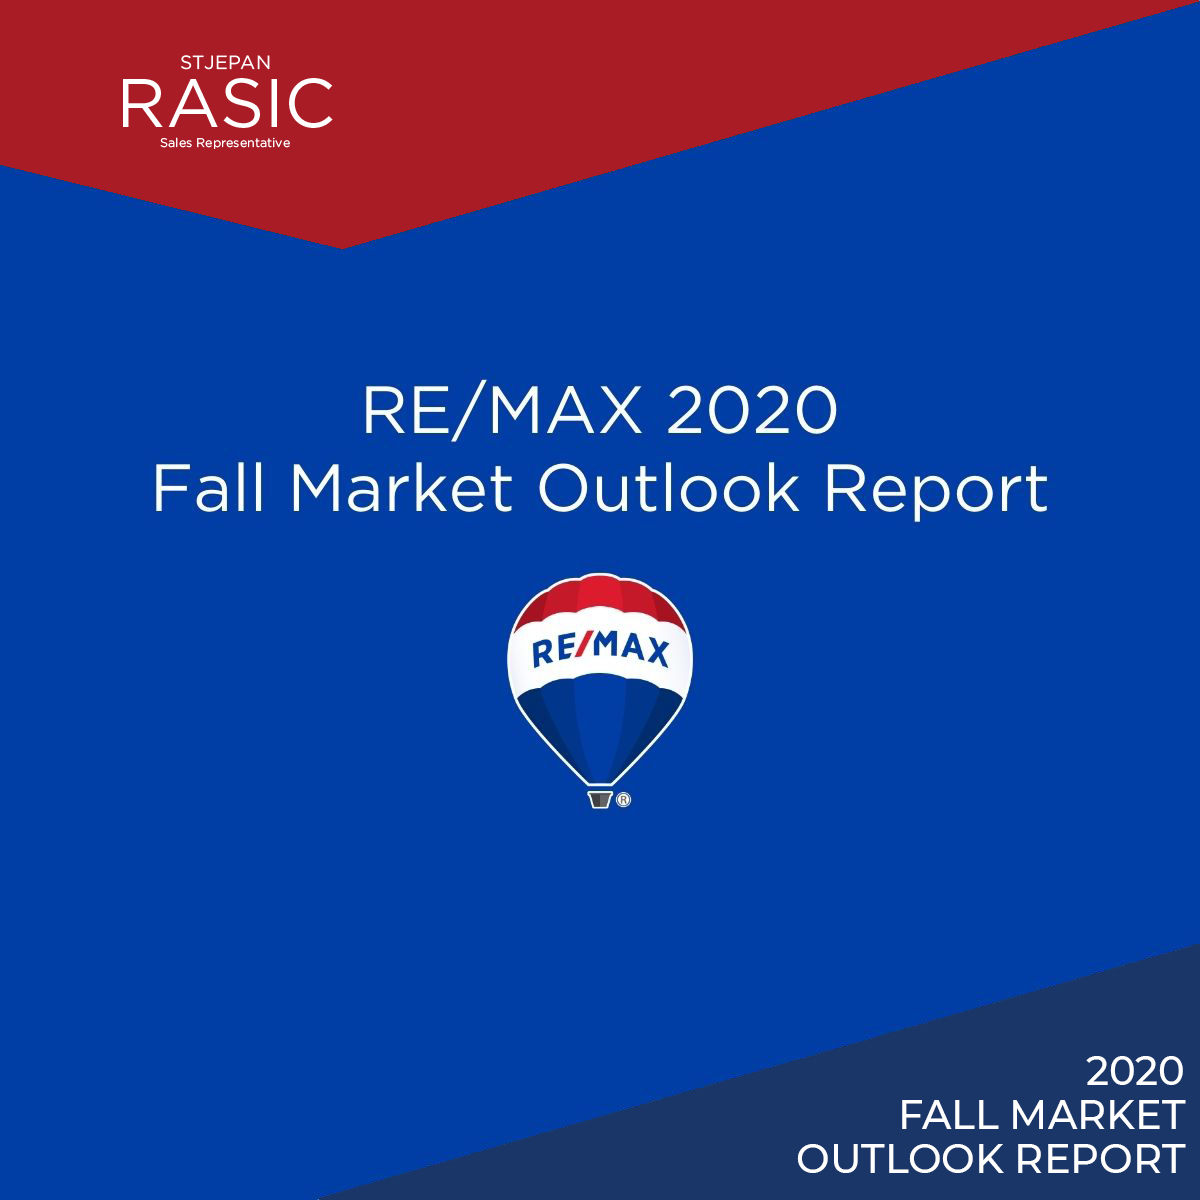 RE/MAX 2020 Fall Market Outlook Report